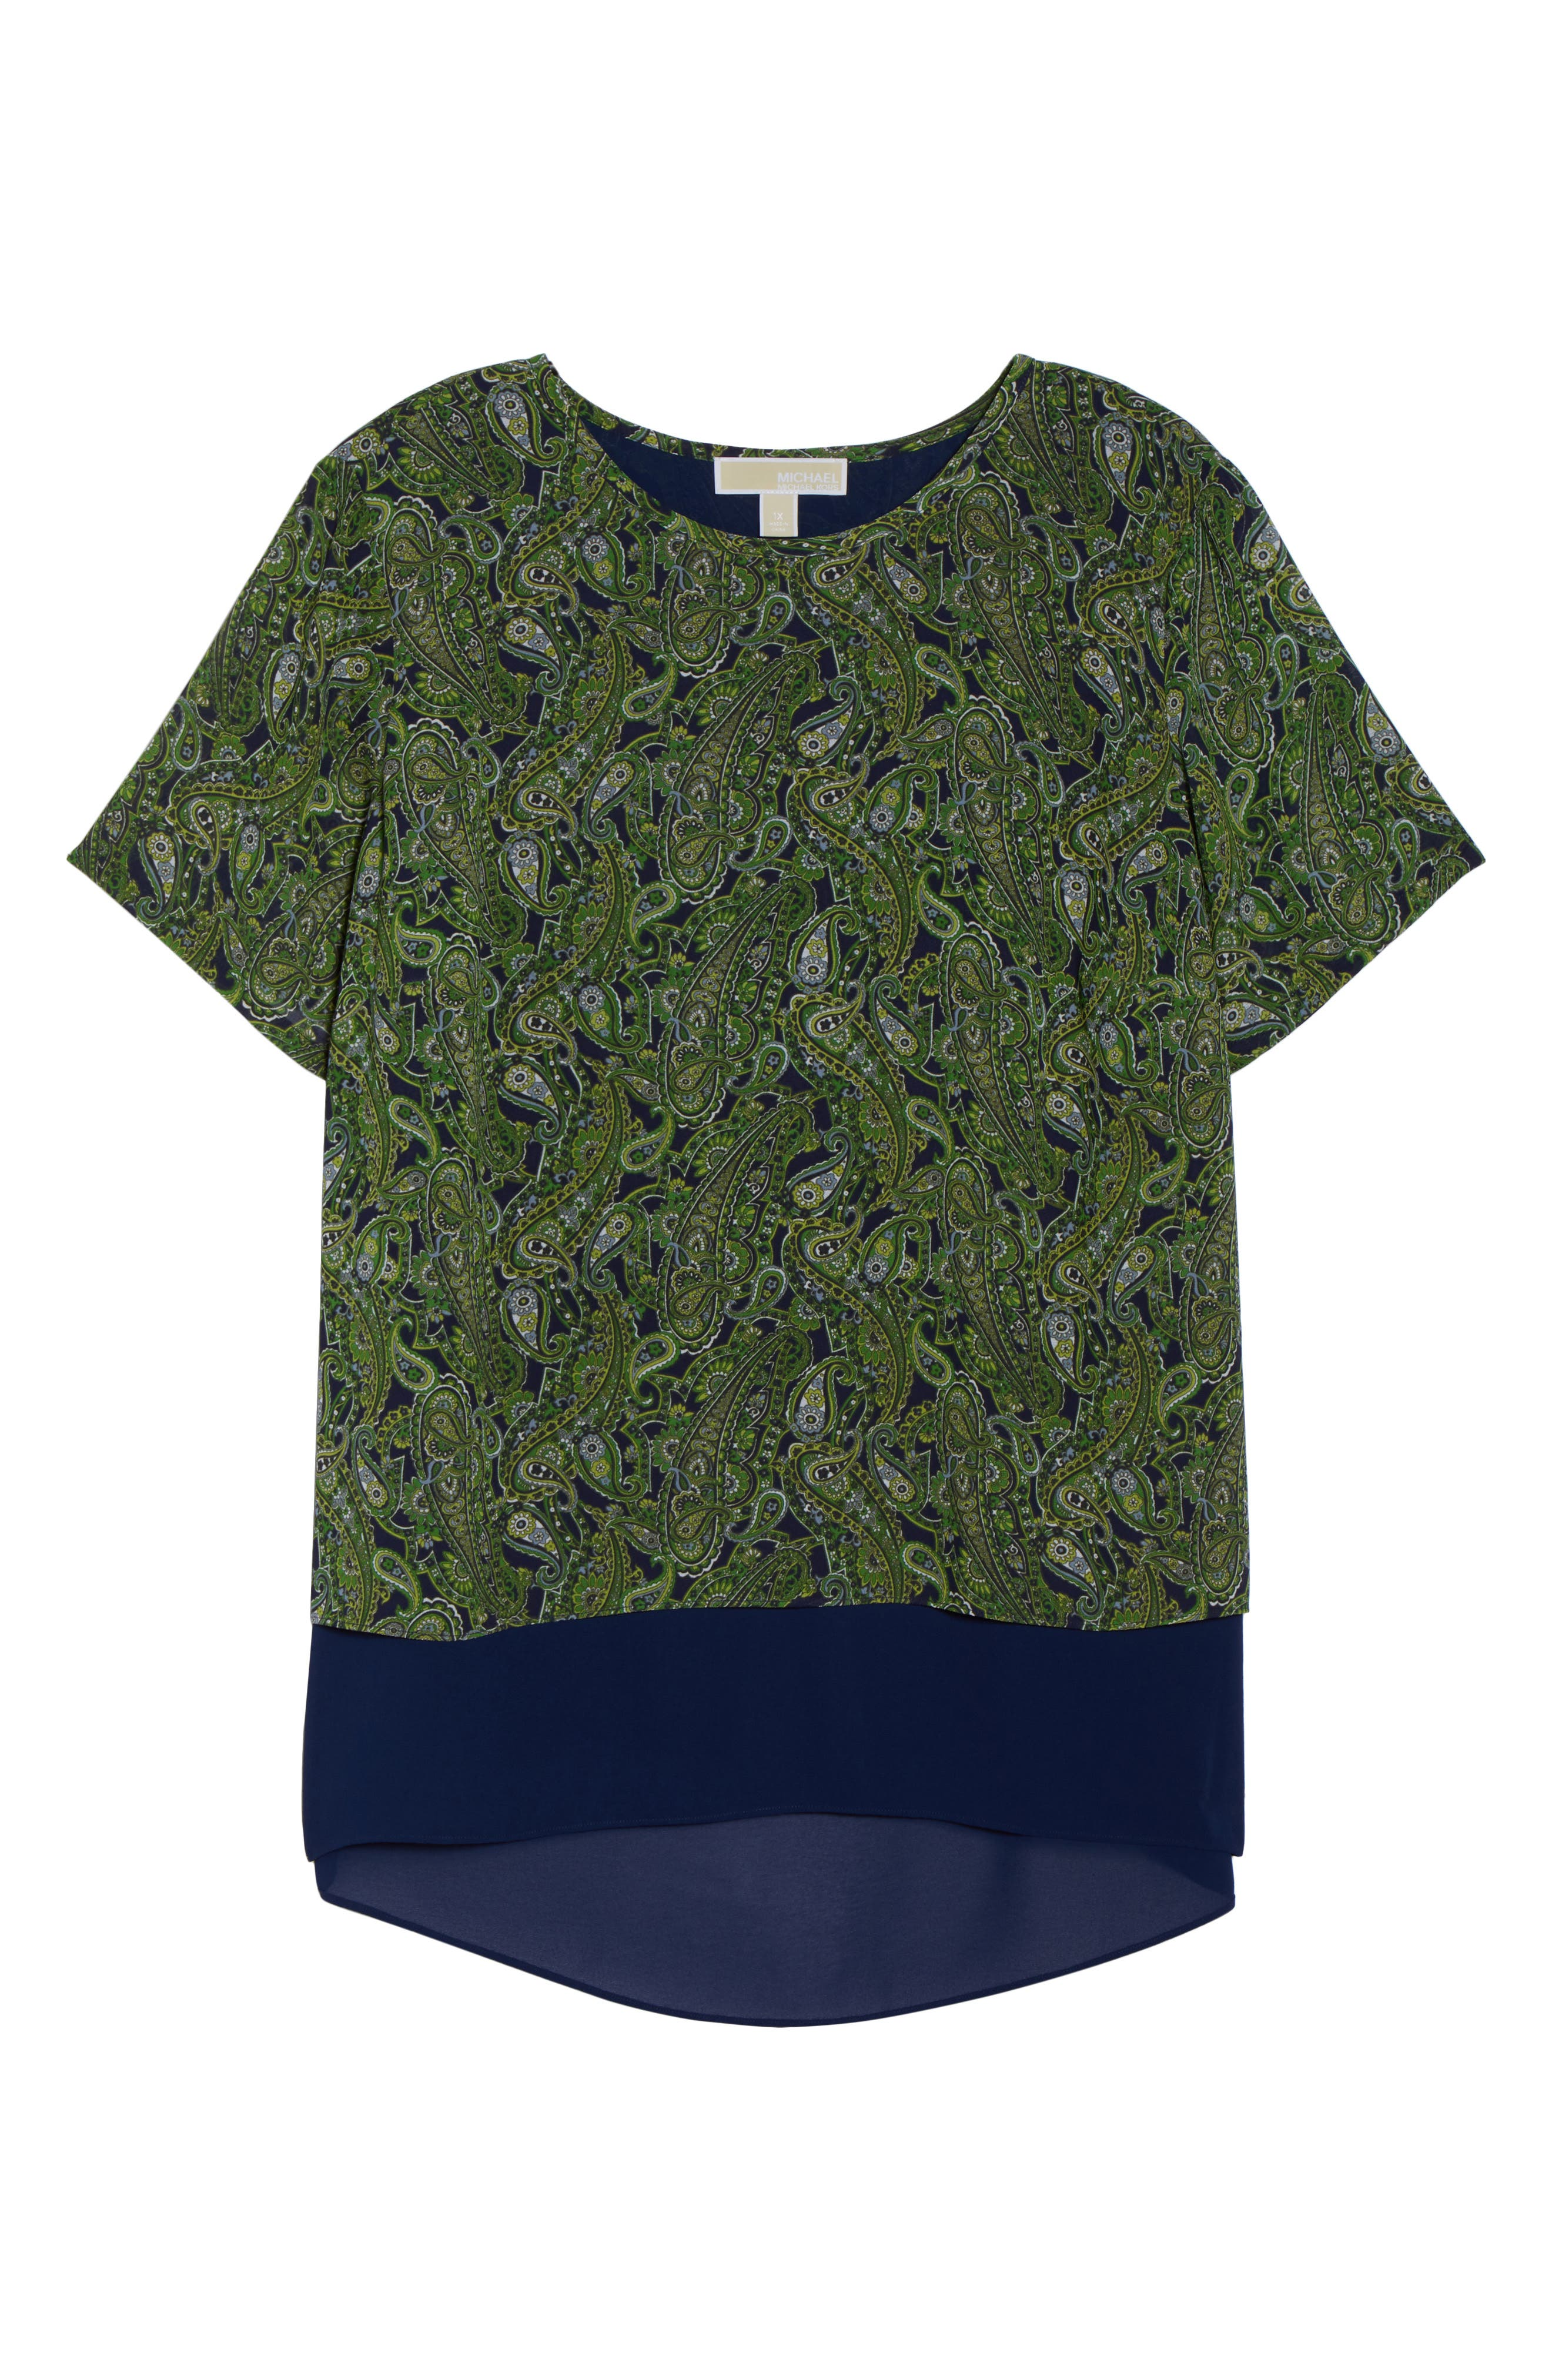 Paisley Paradise Layered Top,                             Alternate thumbnail 7, color,                             True Navy/ Green Apple Mu